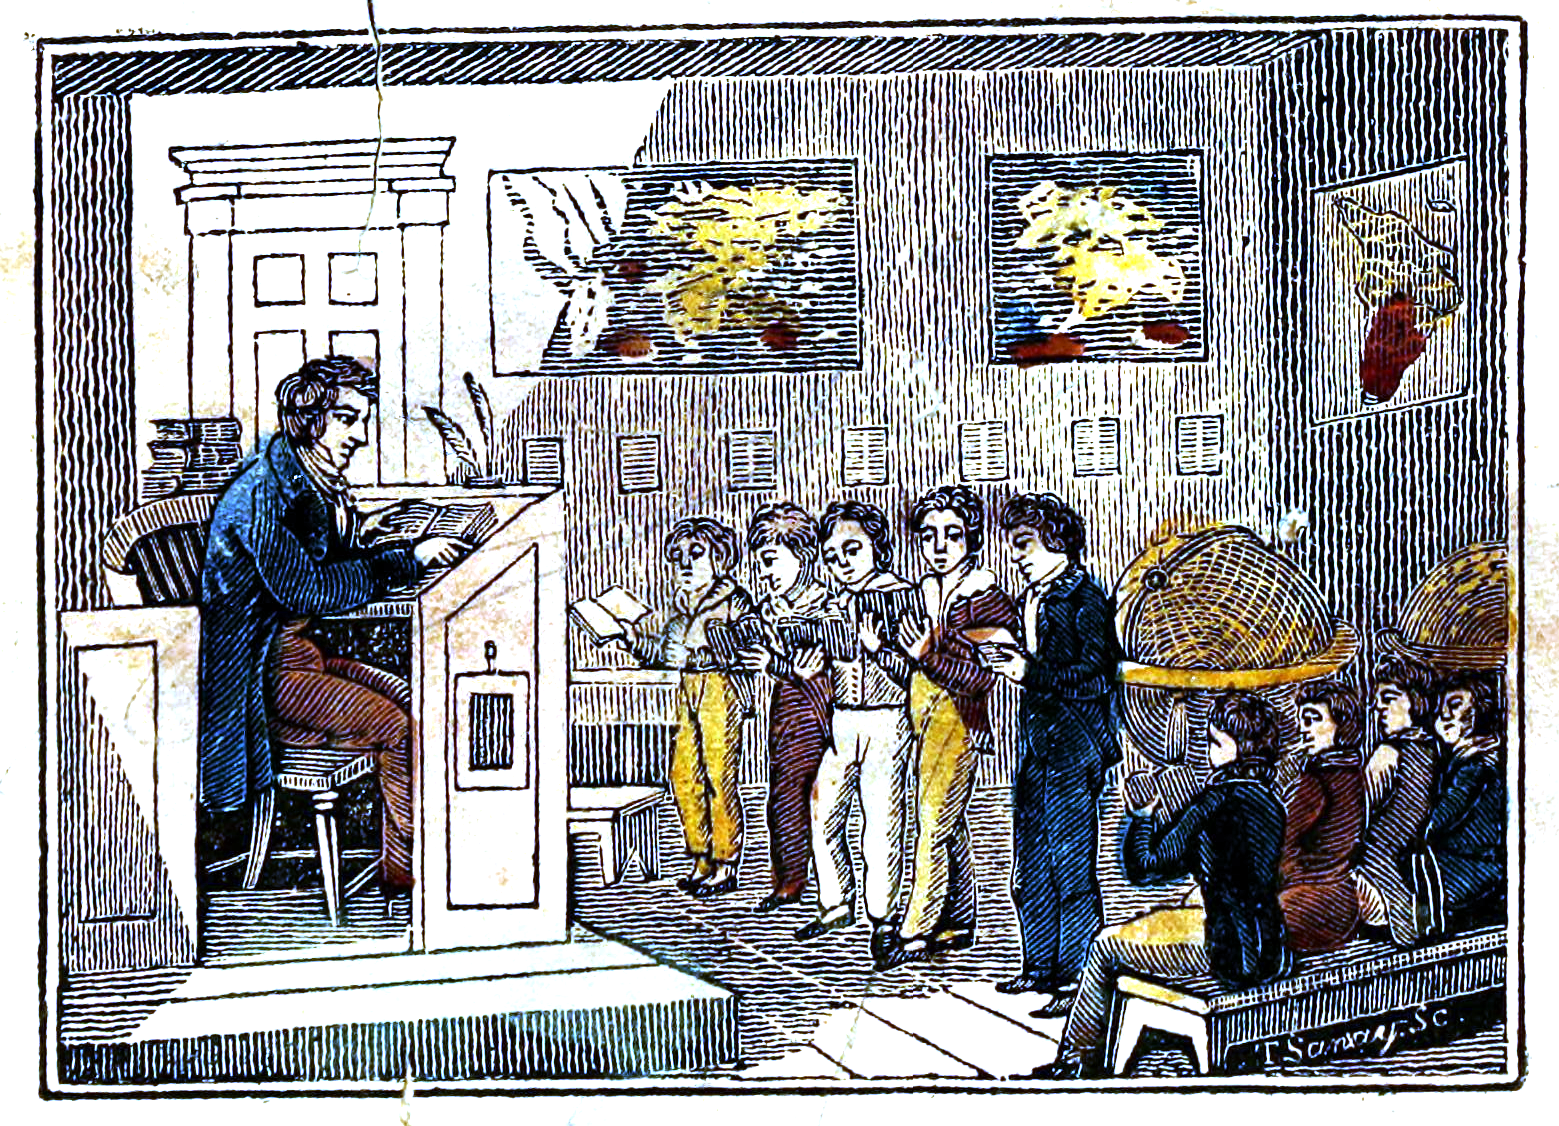 The Ladder of Learning (colored engraving, 1835)